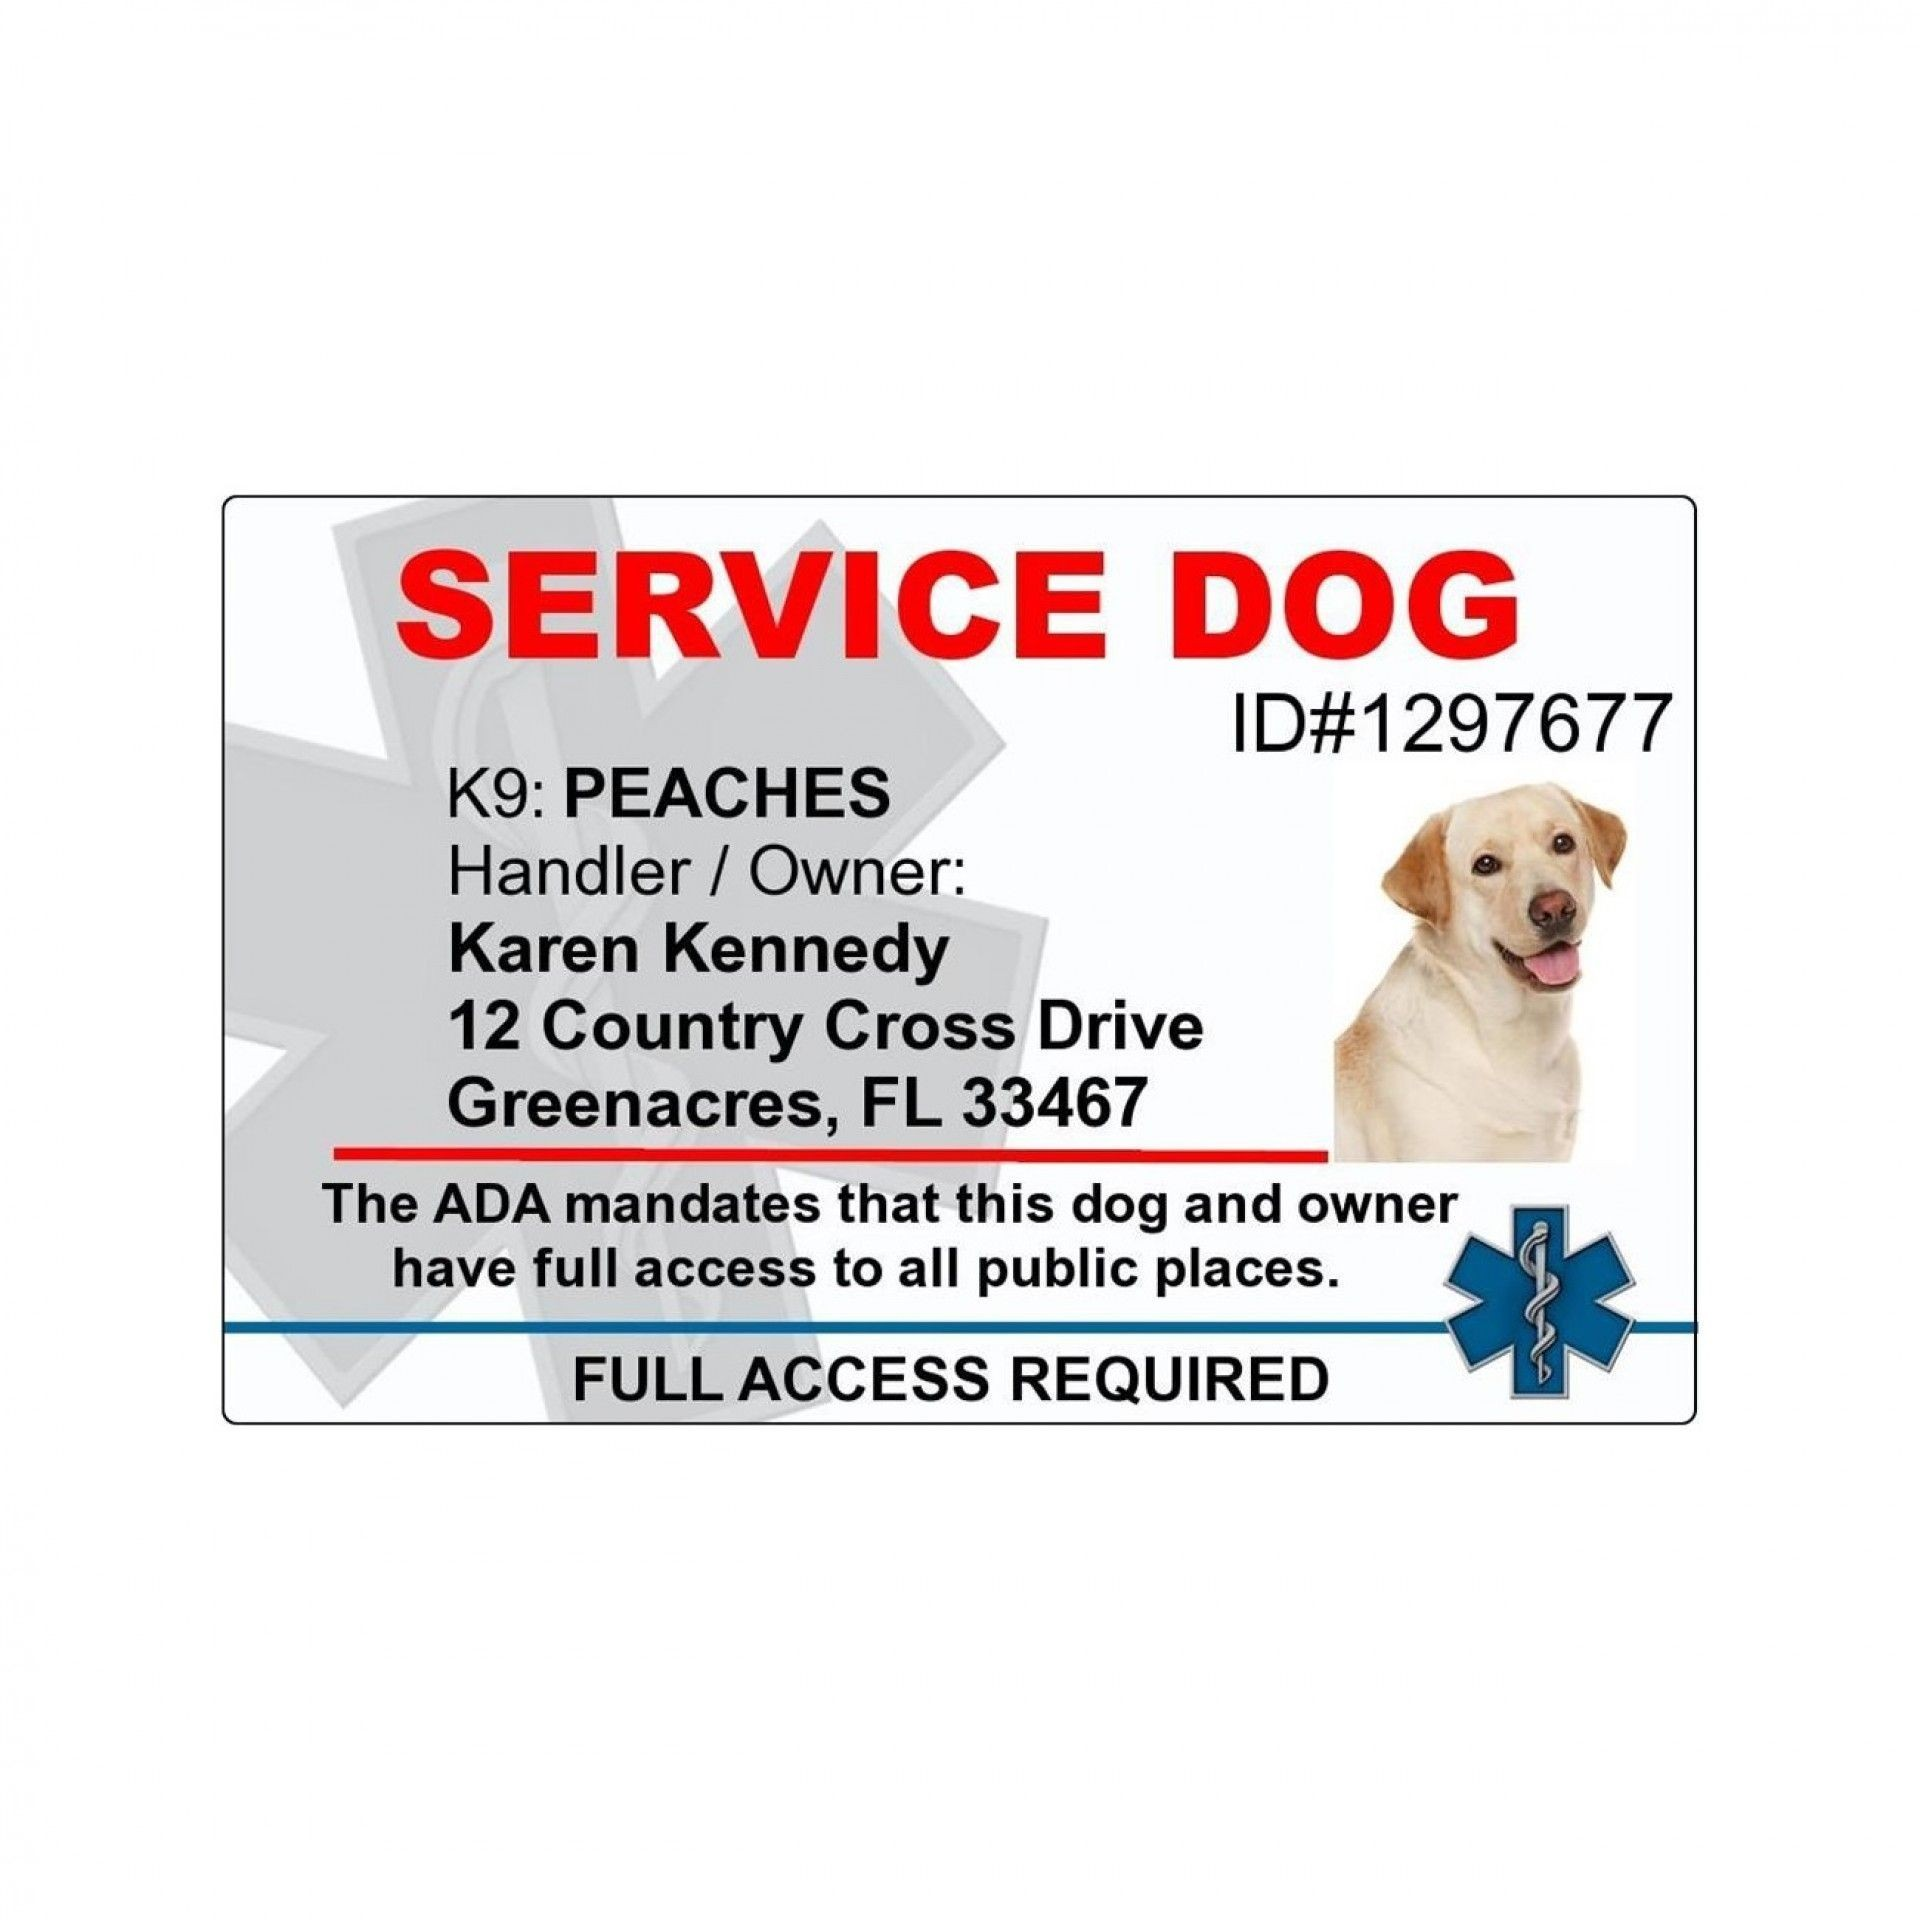 001 Shocking Service Dog Certificate Template Photo  Printable Id Free1920